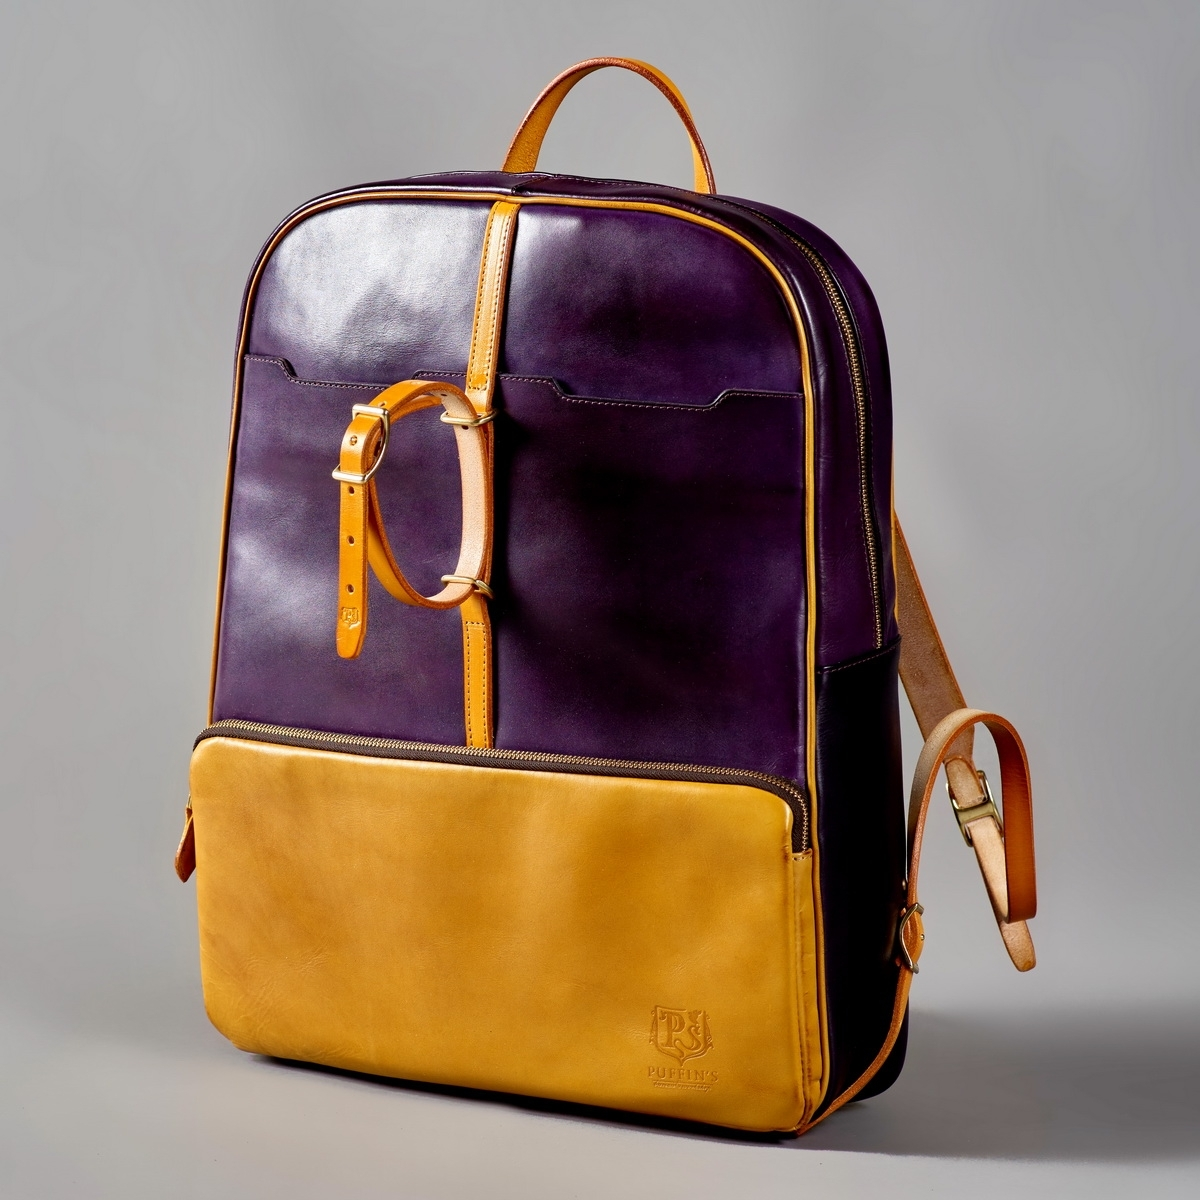 Backpack GRAN TURISMO 17'' bright mustard & violet ink